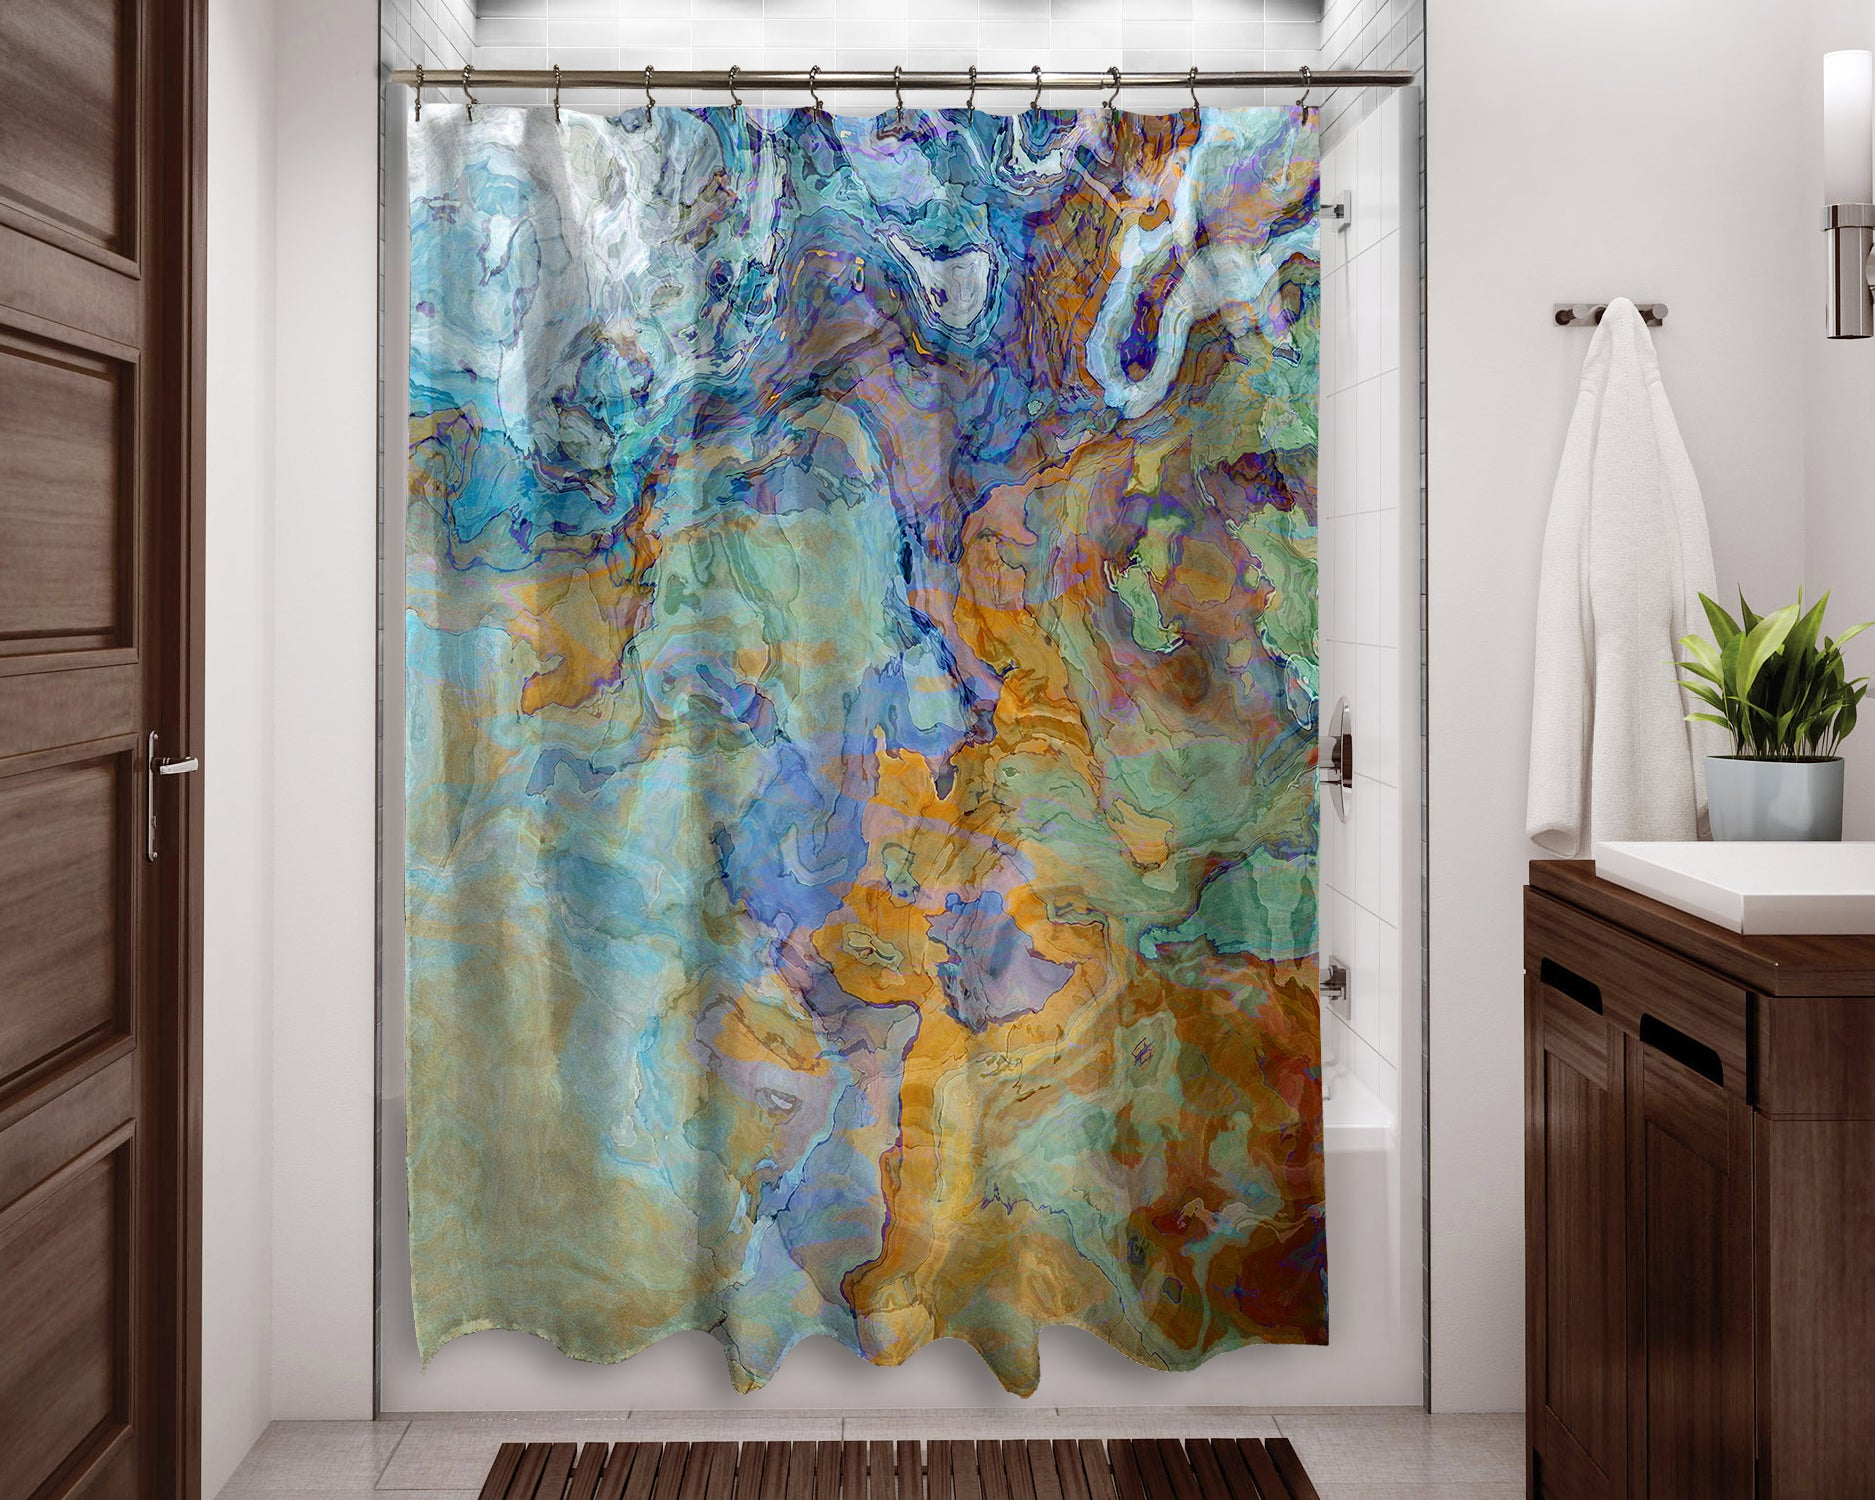 Contemporary Shower Curtain Orange Blue Green Brown Abstract Art Home